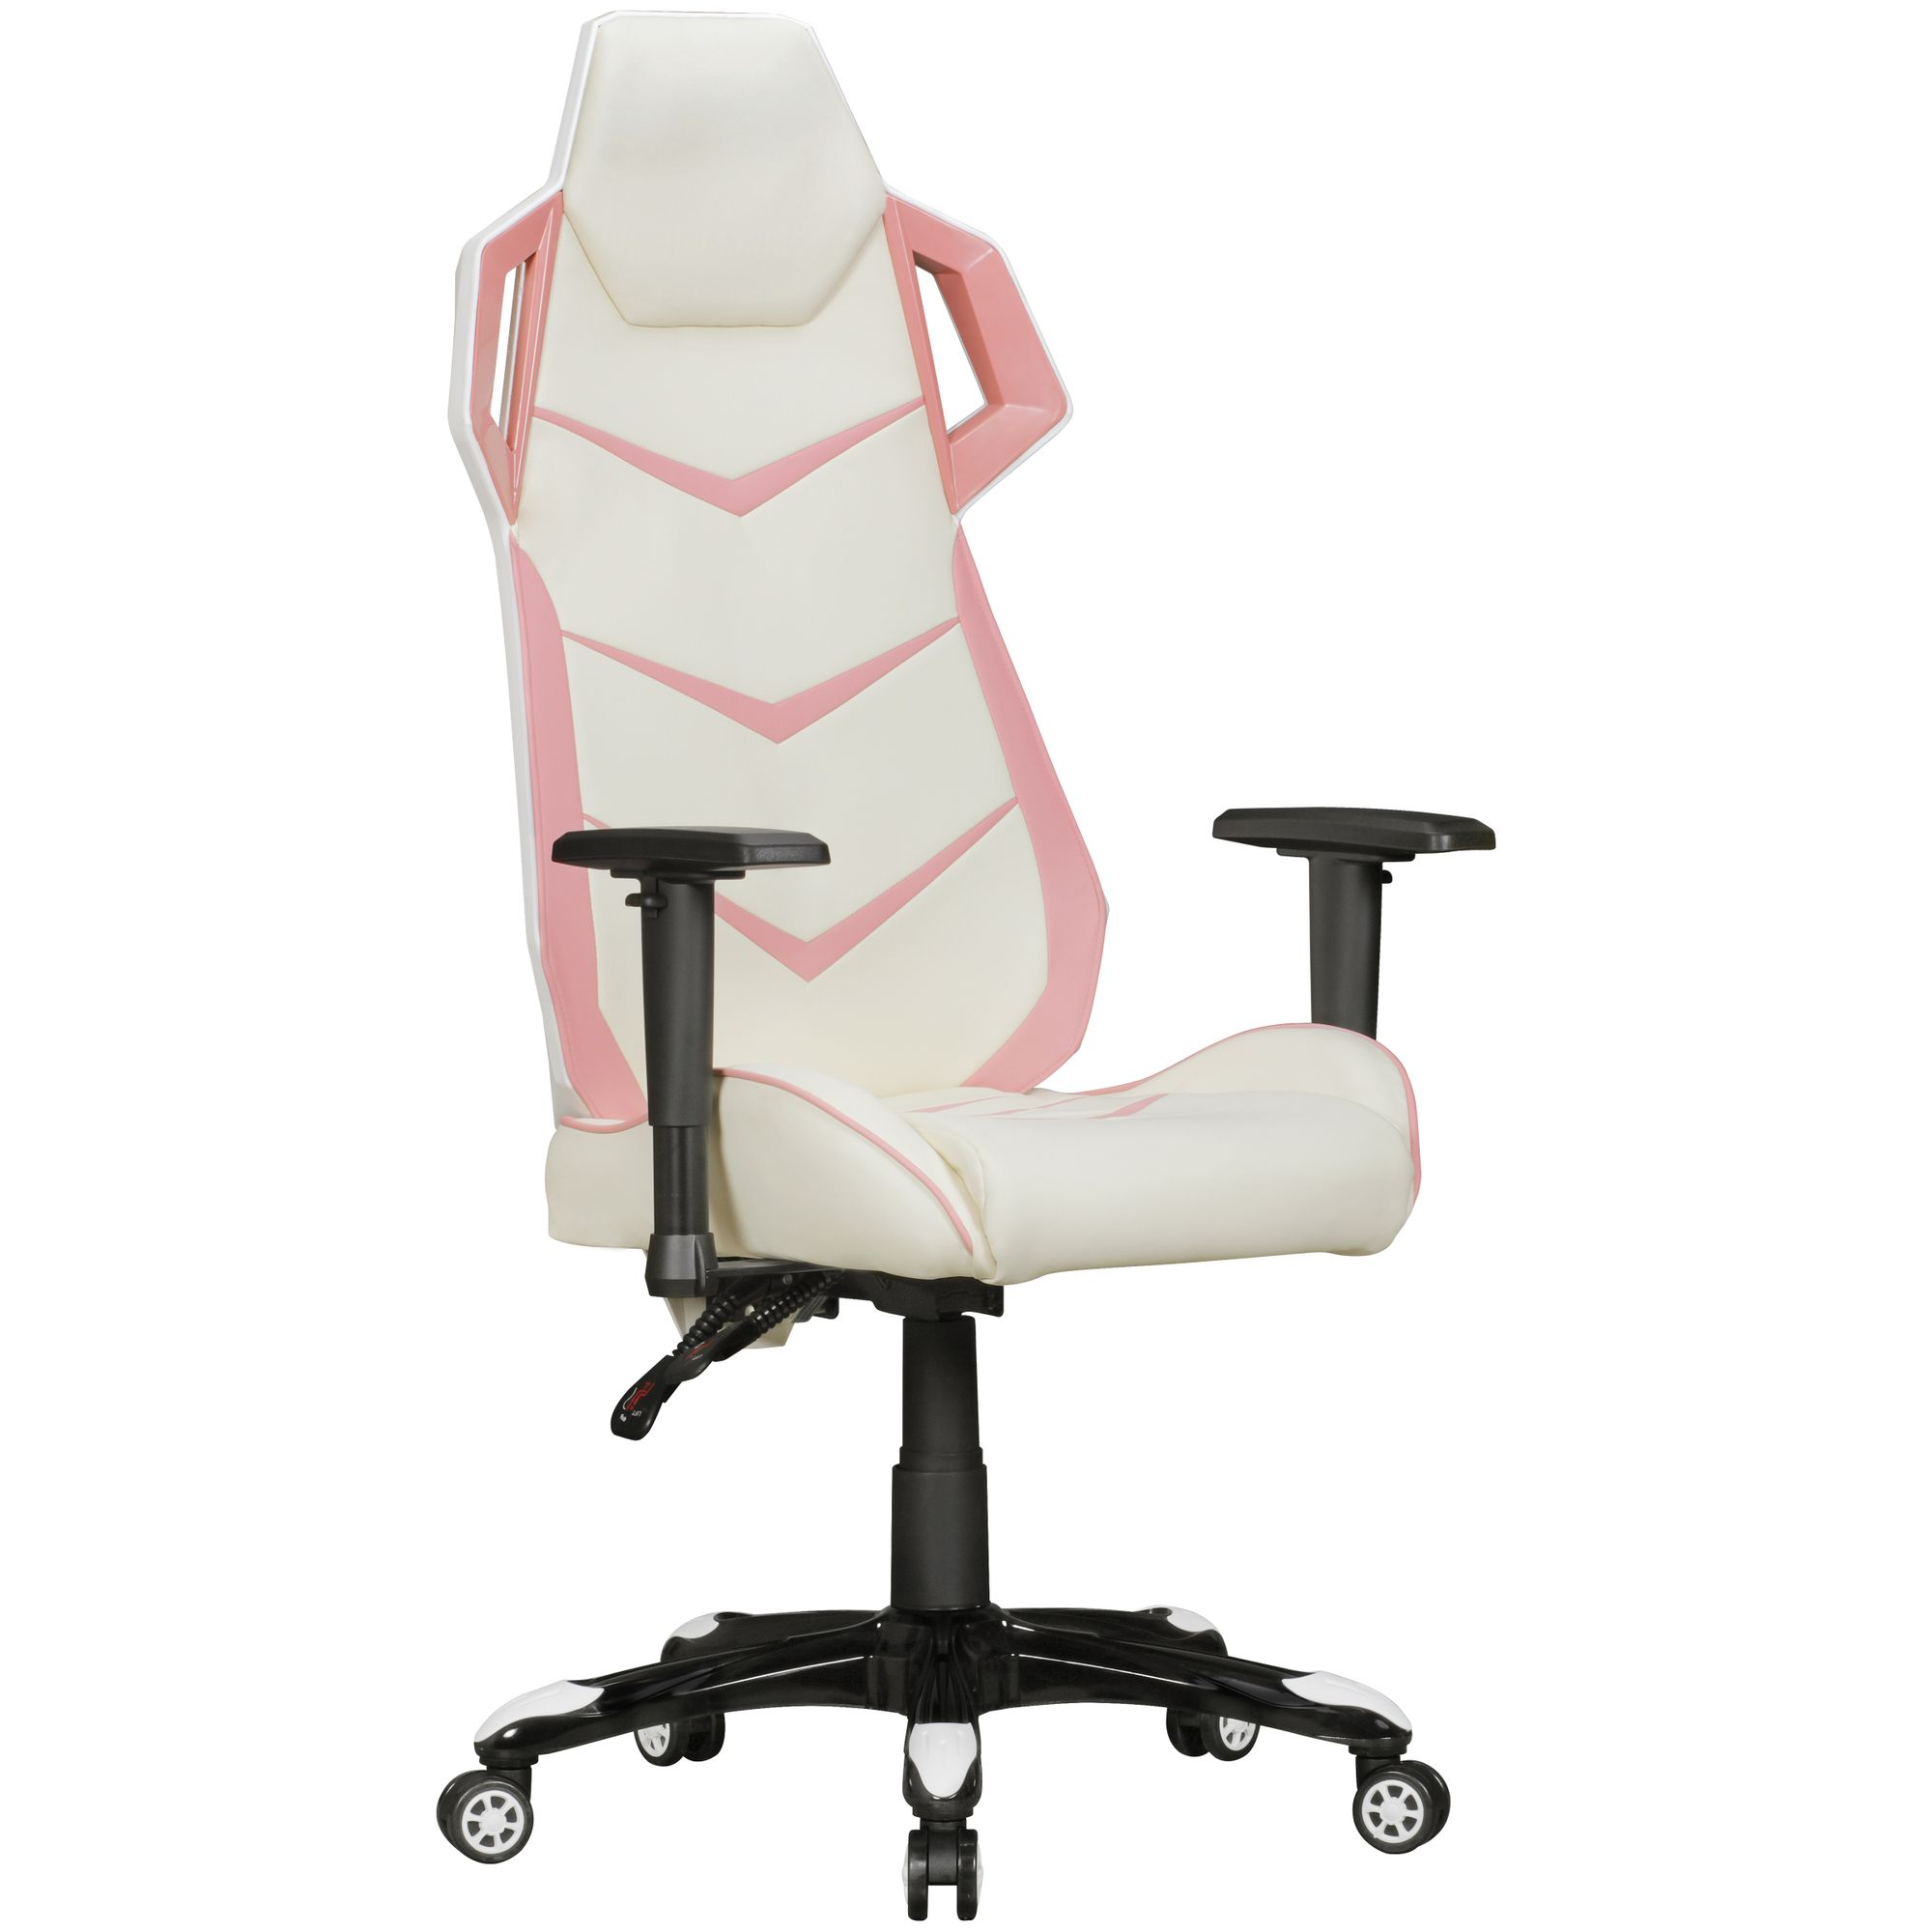 Chefsessel Racer Amstyle Gamepad Gaming Chair Aus Kunstleder In Rosa Creme Schreibtisch Stuhl In Leder Optik Design Racing Chefsessel Mit Armlehne Gamer